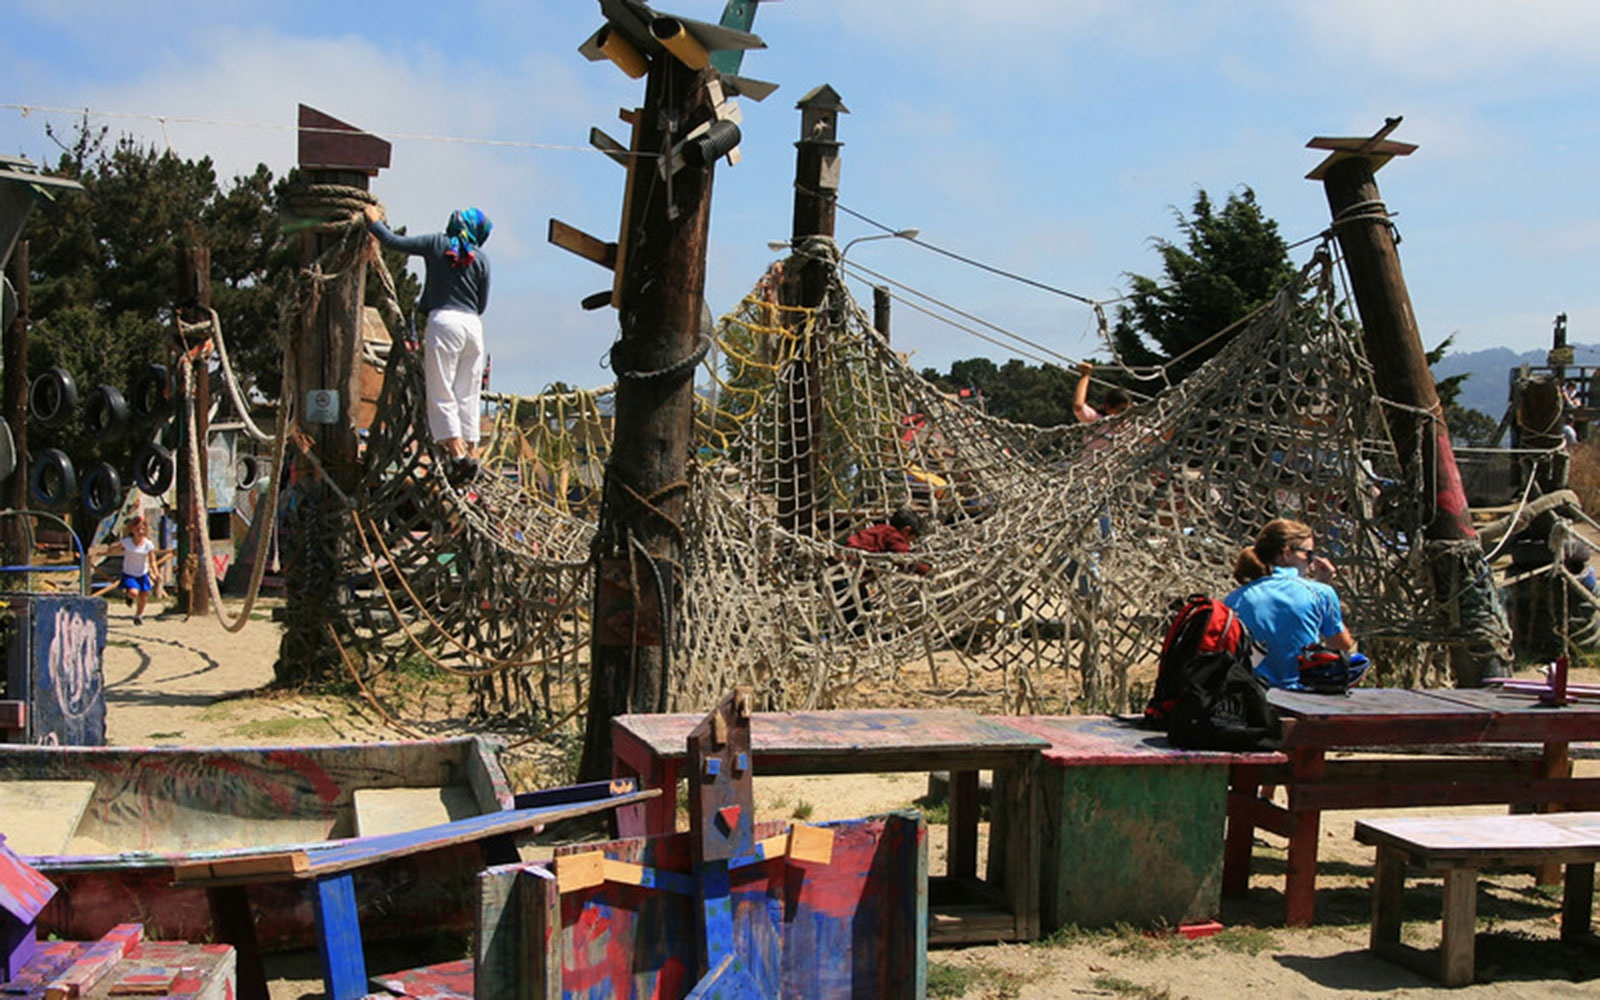 Adventure Playground, Berkeley, CA